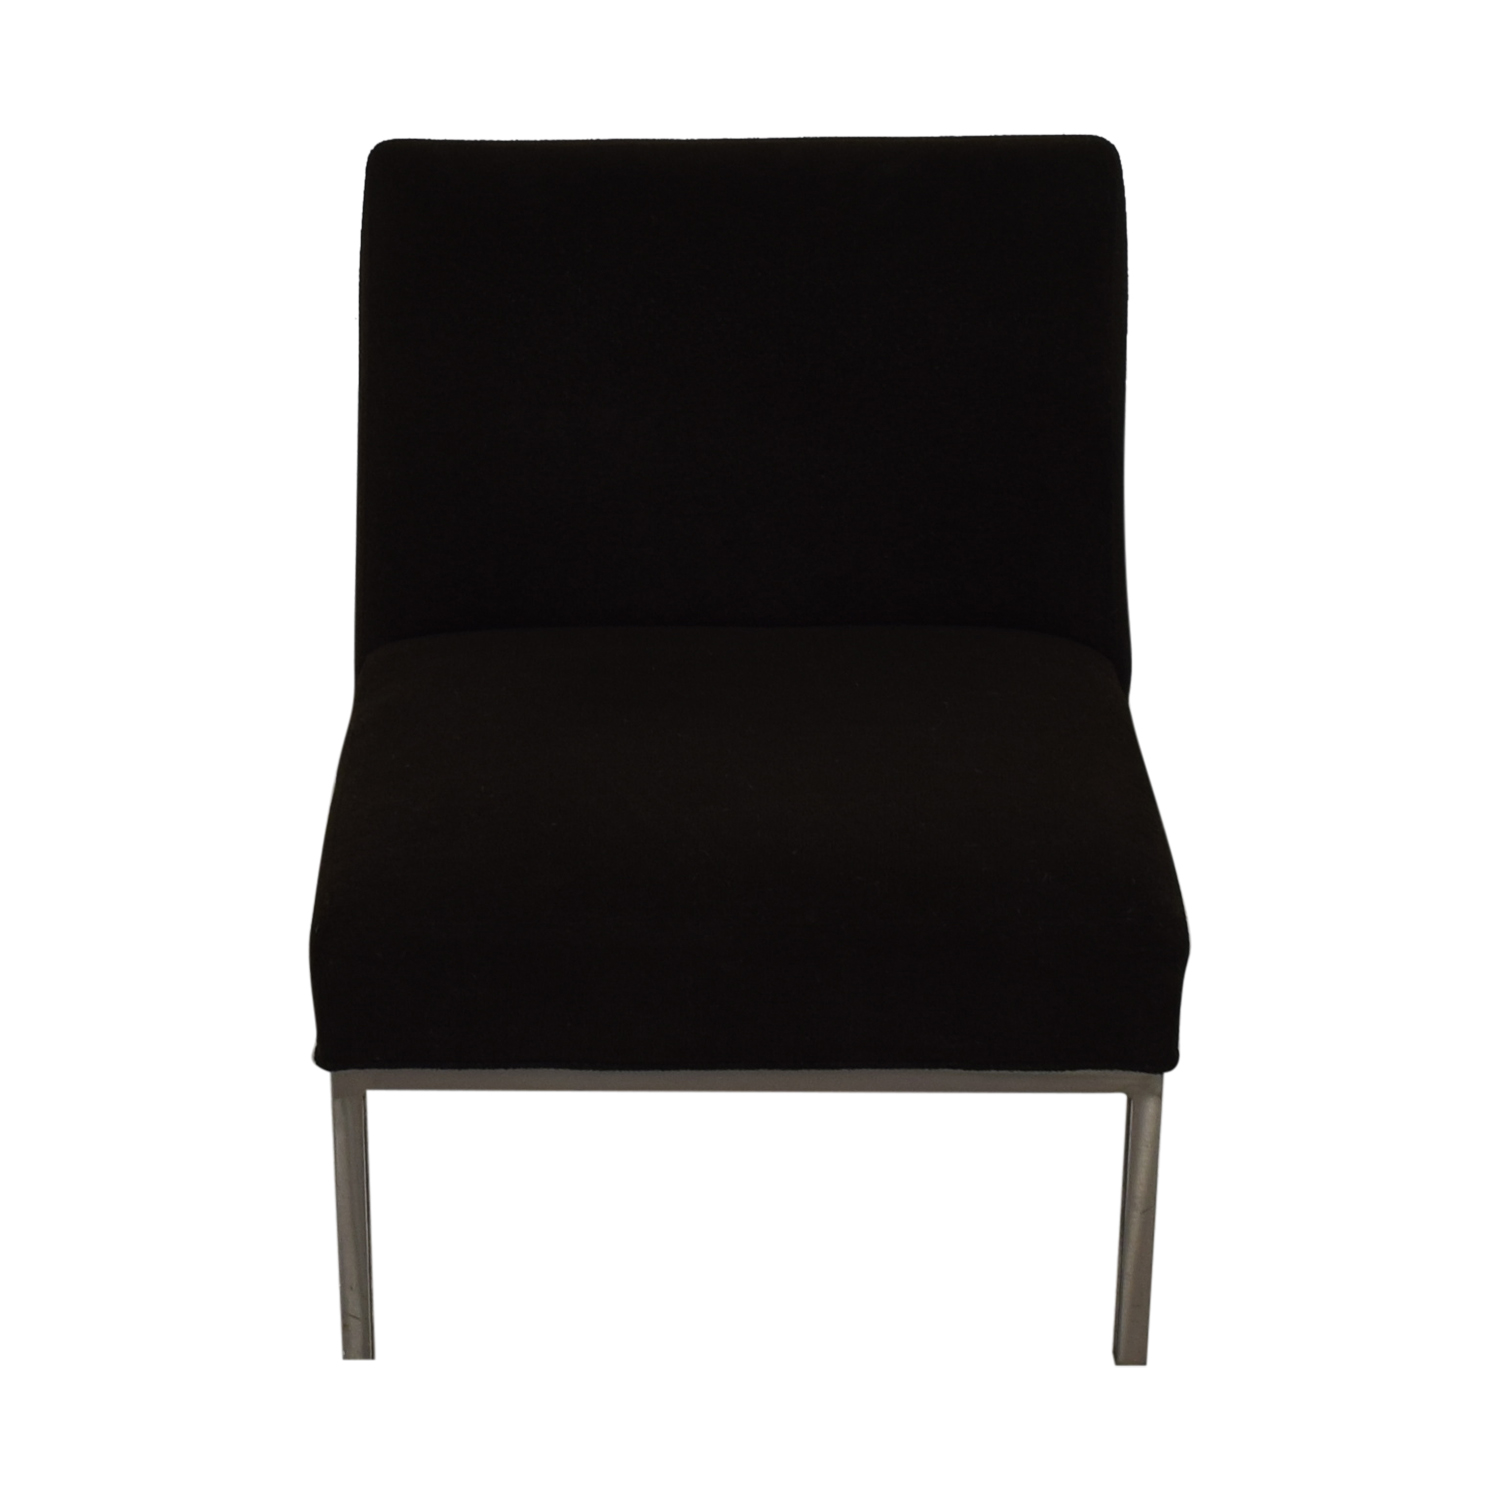 Room & Board Steel and Fabric Accent Chair sale